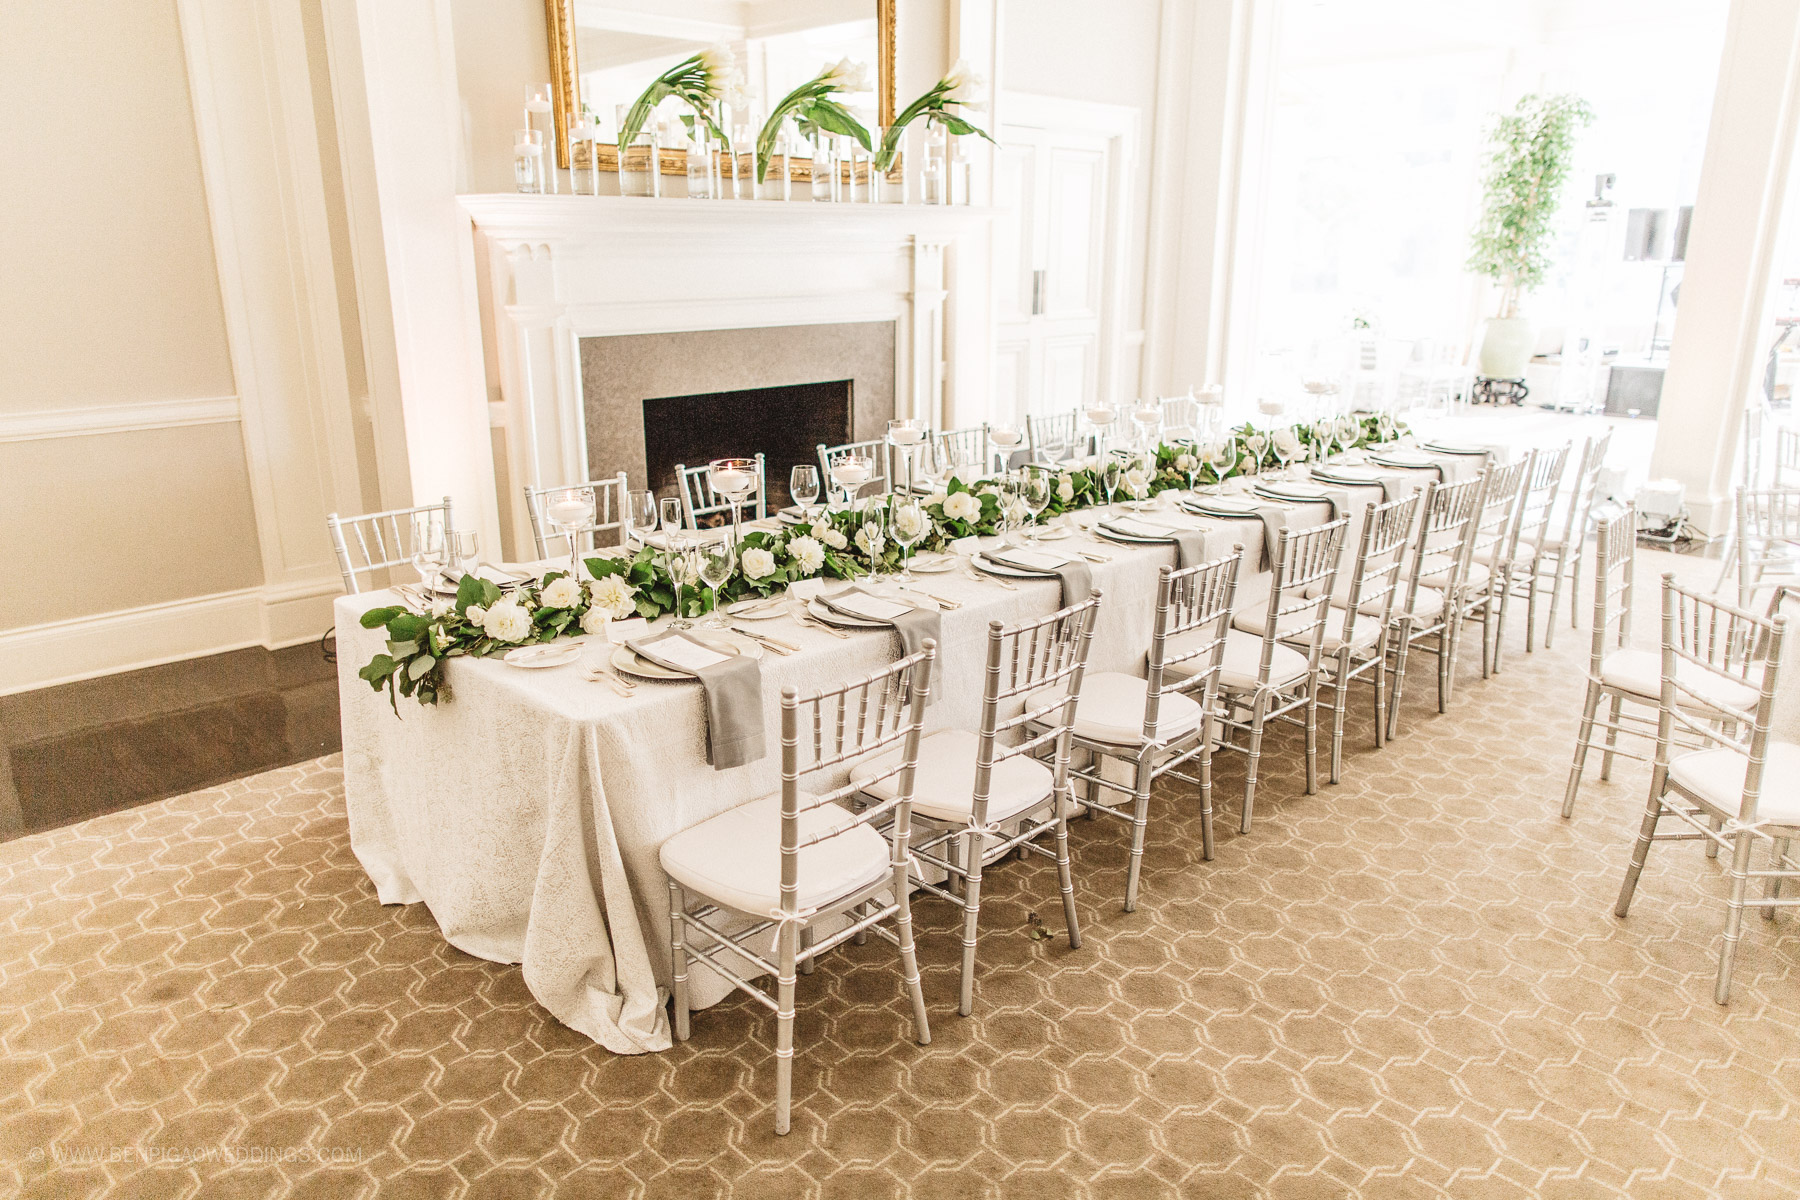 Gorgeous Simple Wedding Centerpieces - Portland, Oregon Waverley Country Club Wedding